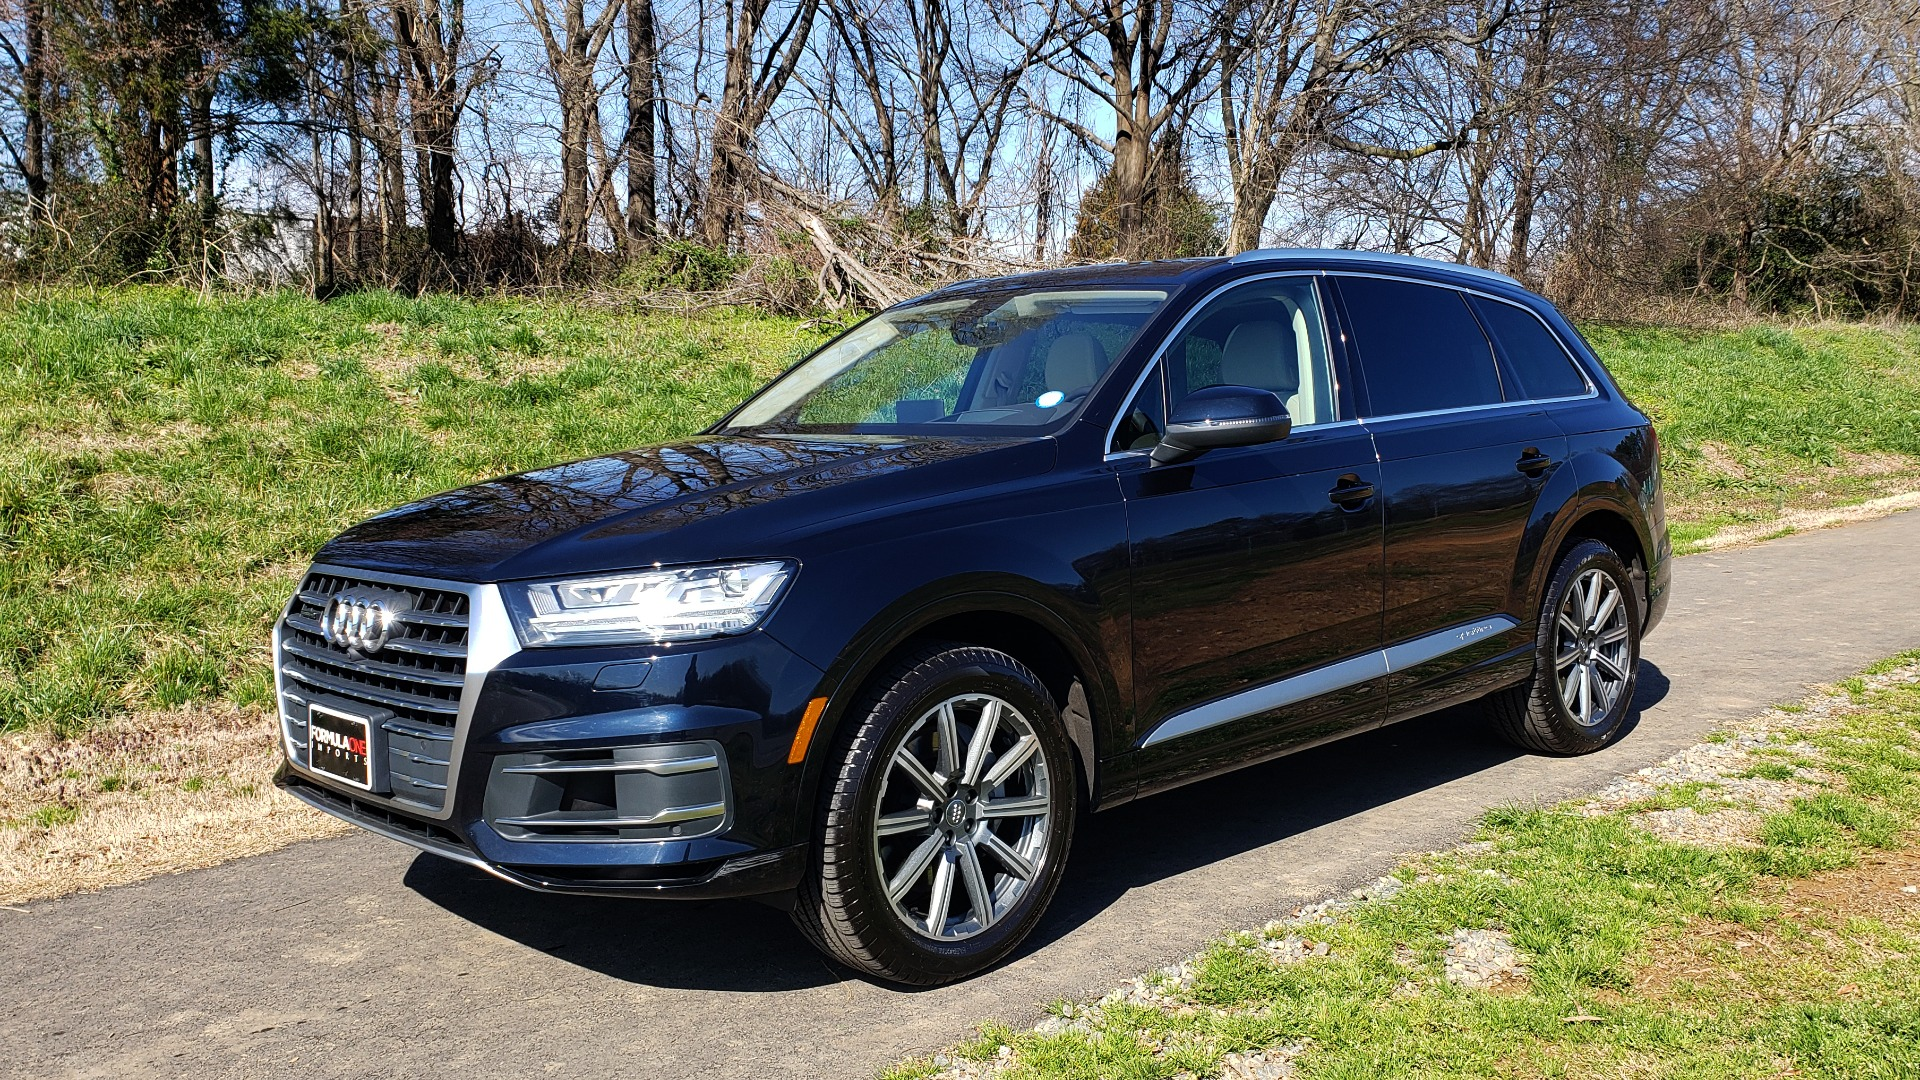 Used 2018 Audi Q7 PRESTIGE 3.0T CLD WTHR / NAV / BOSE / HEADS-UP / REARVIEW for sale Sold at Formula Imports in Charlotte NC 28227 1